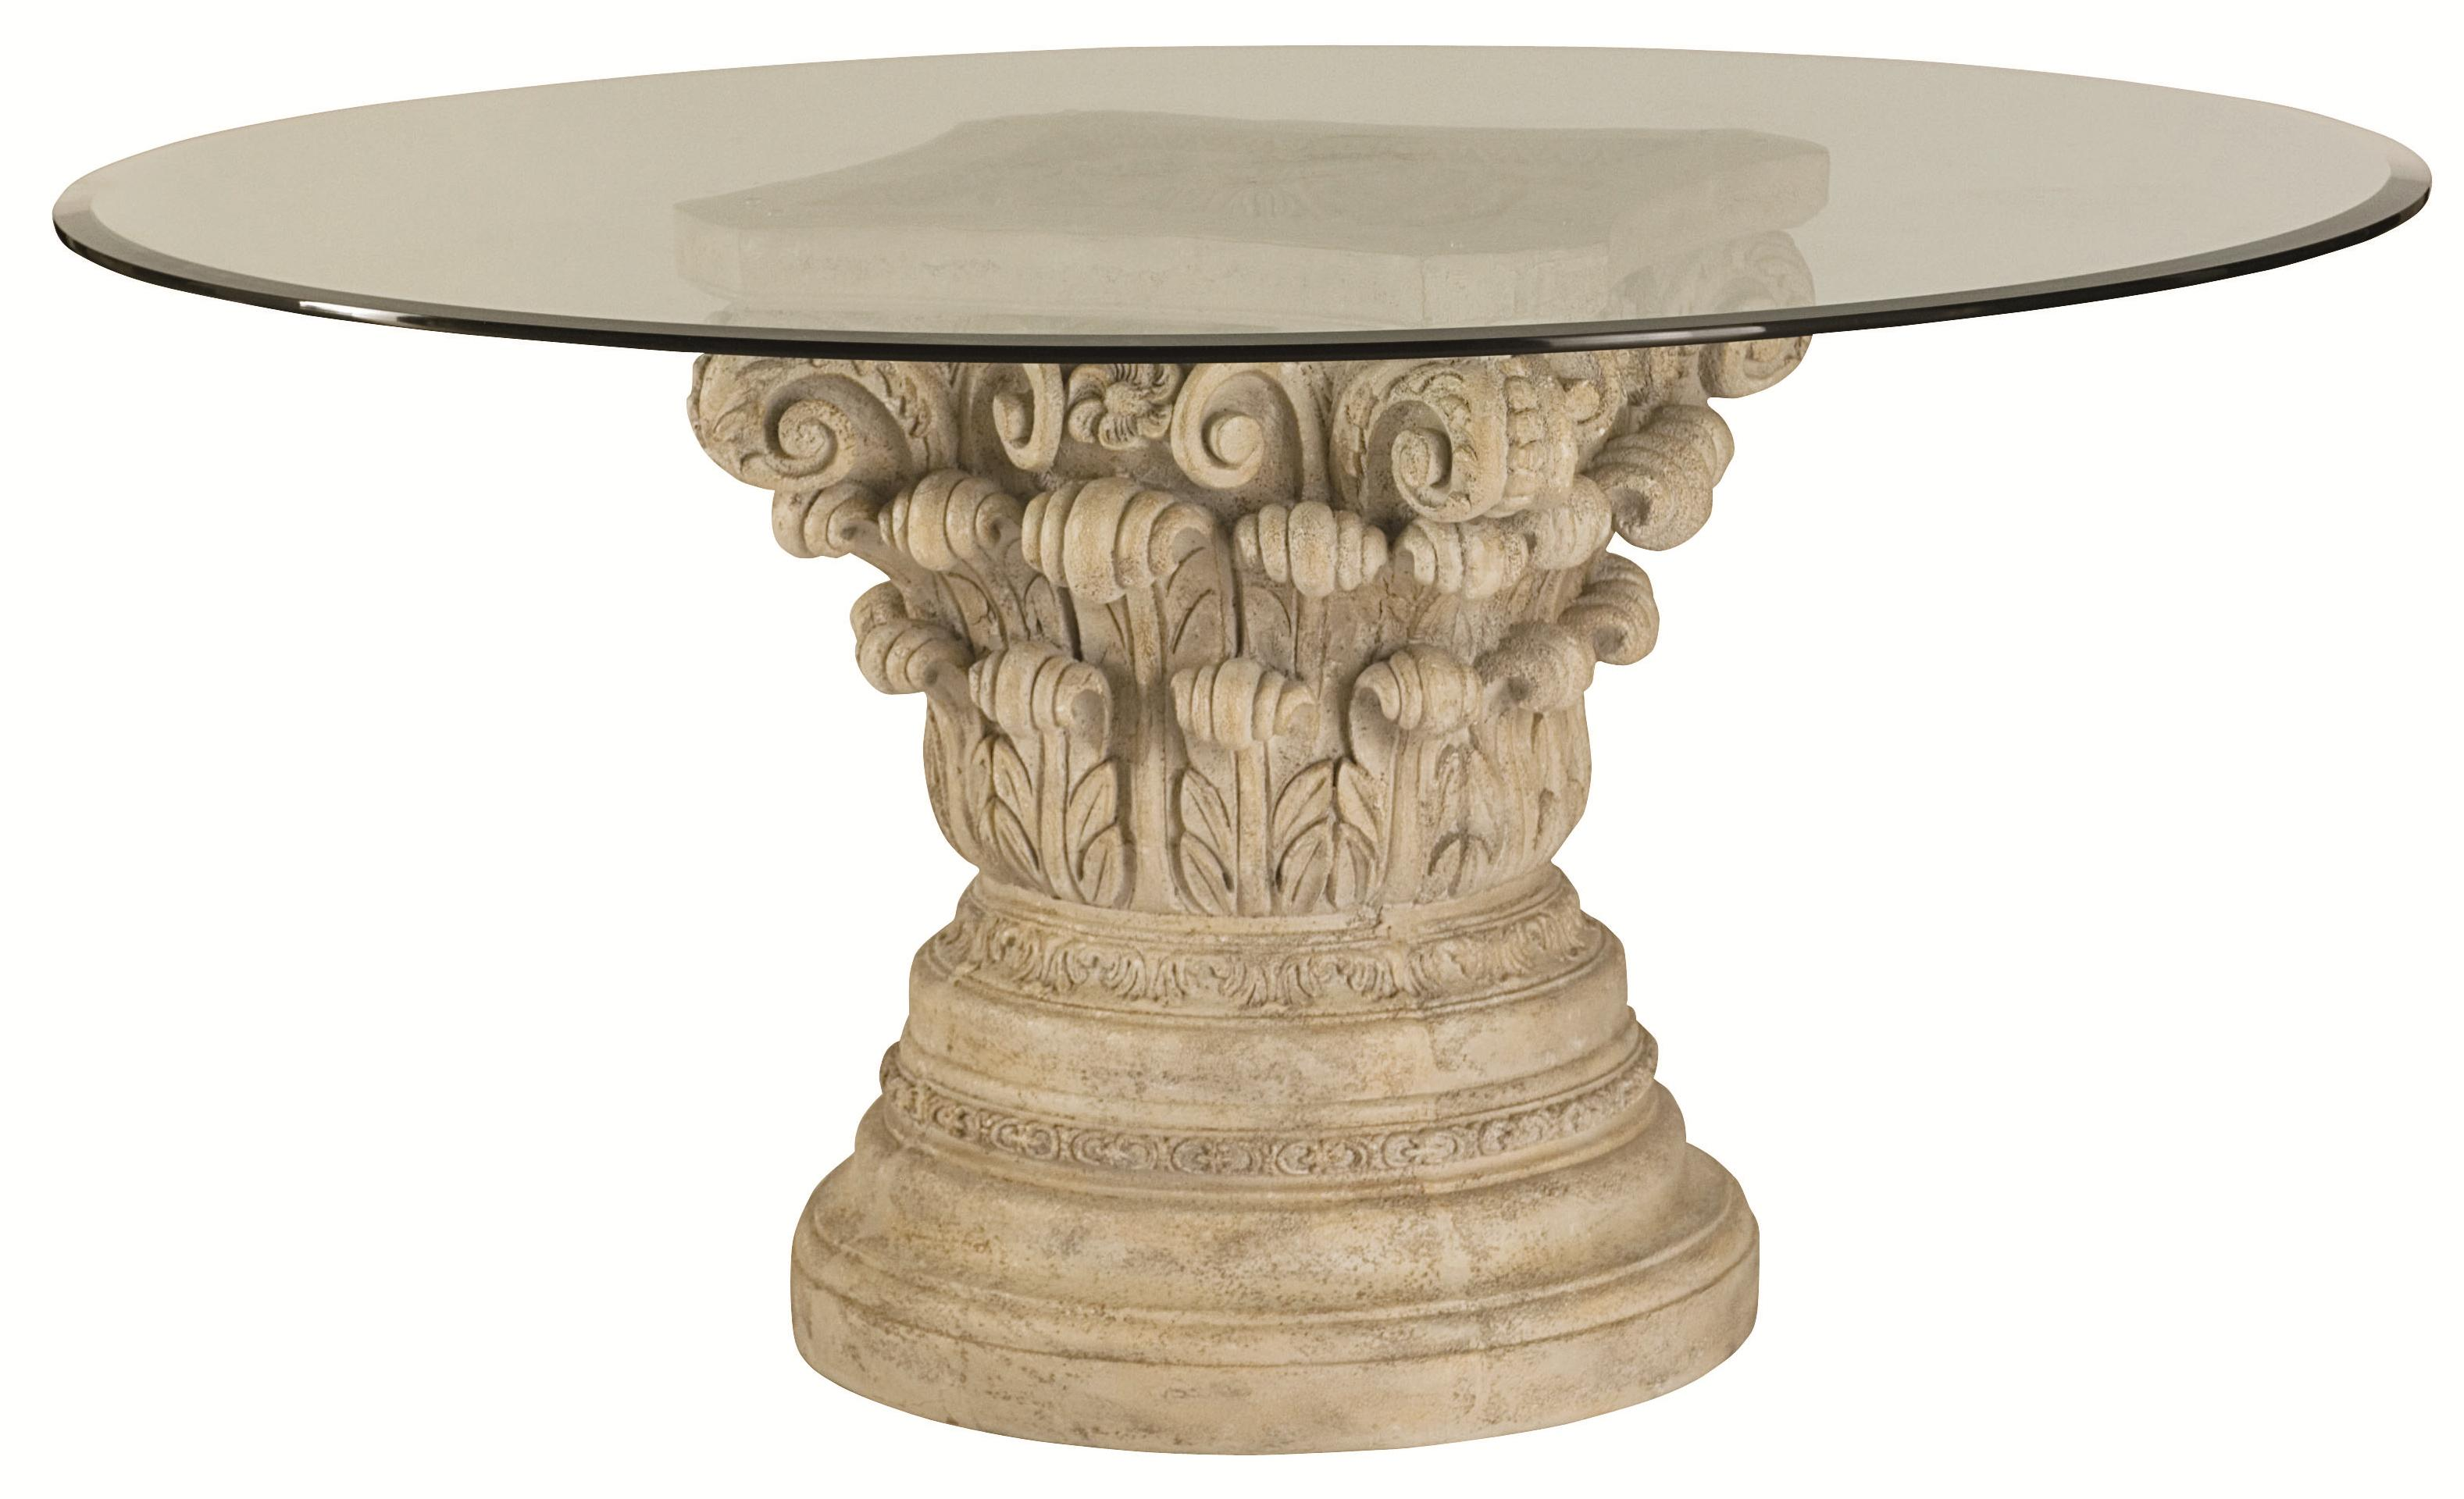 Dining room table bases for glass tops - Glass Top Dining Tables With Wood Base Round Glass Dining Table